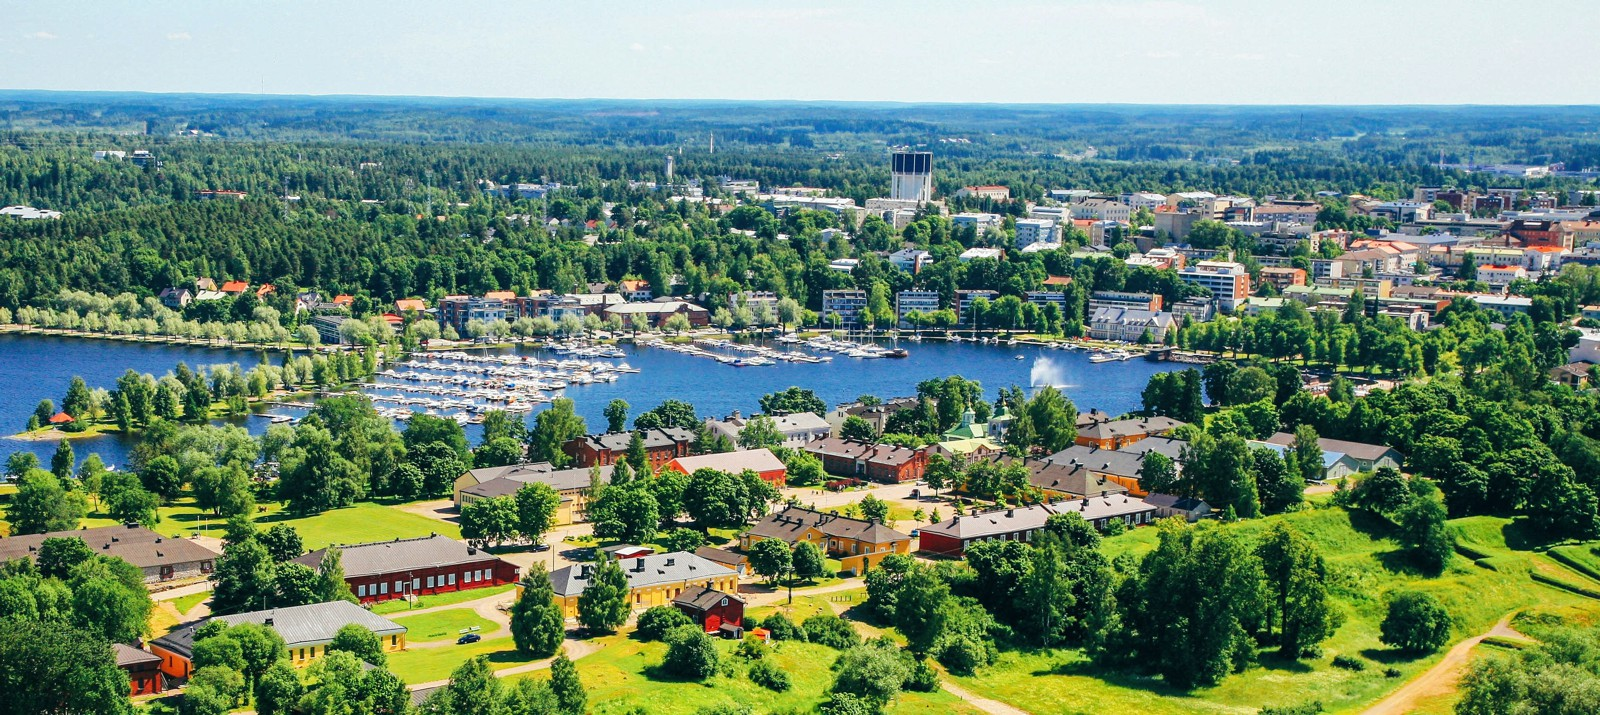 11 Amazing Cities and Towns You Have To Visit in Finland (19)